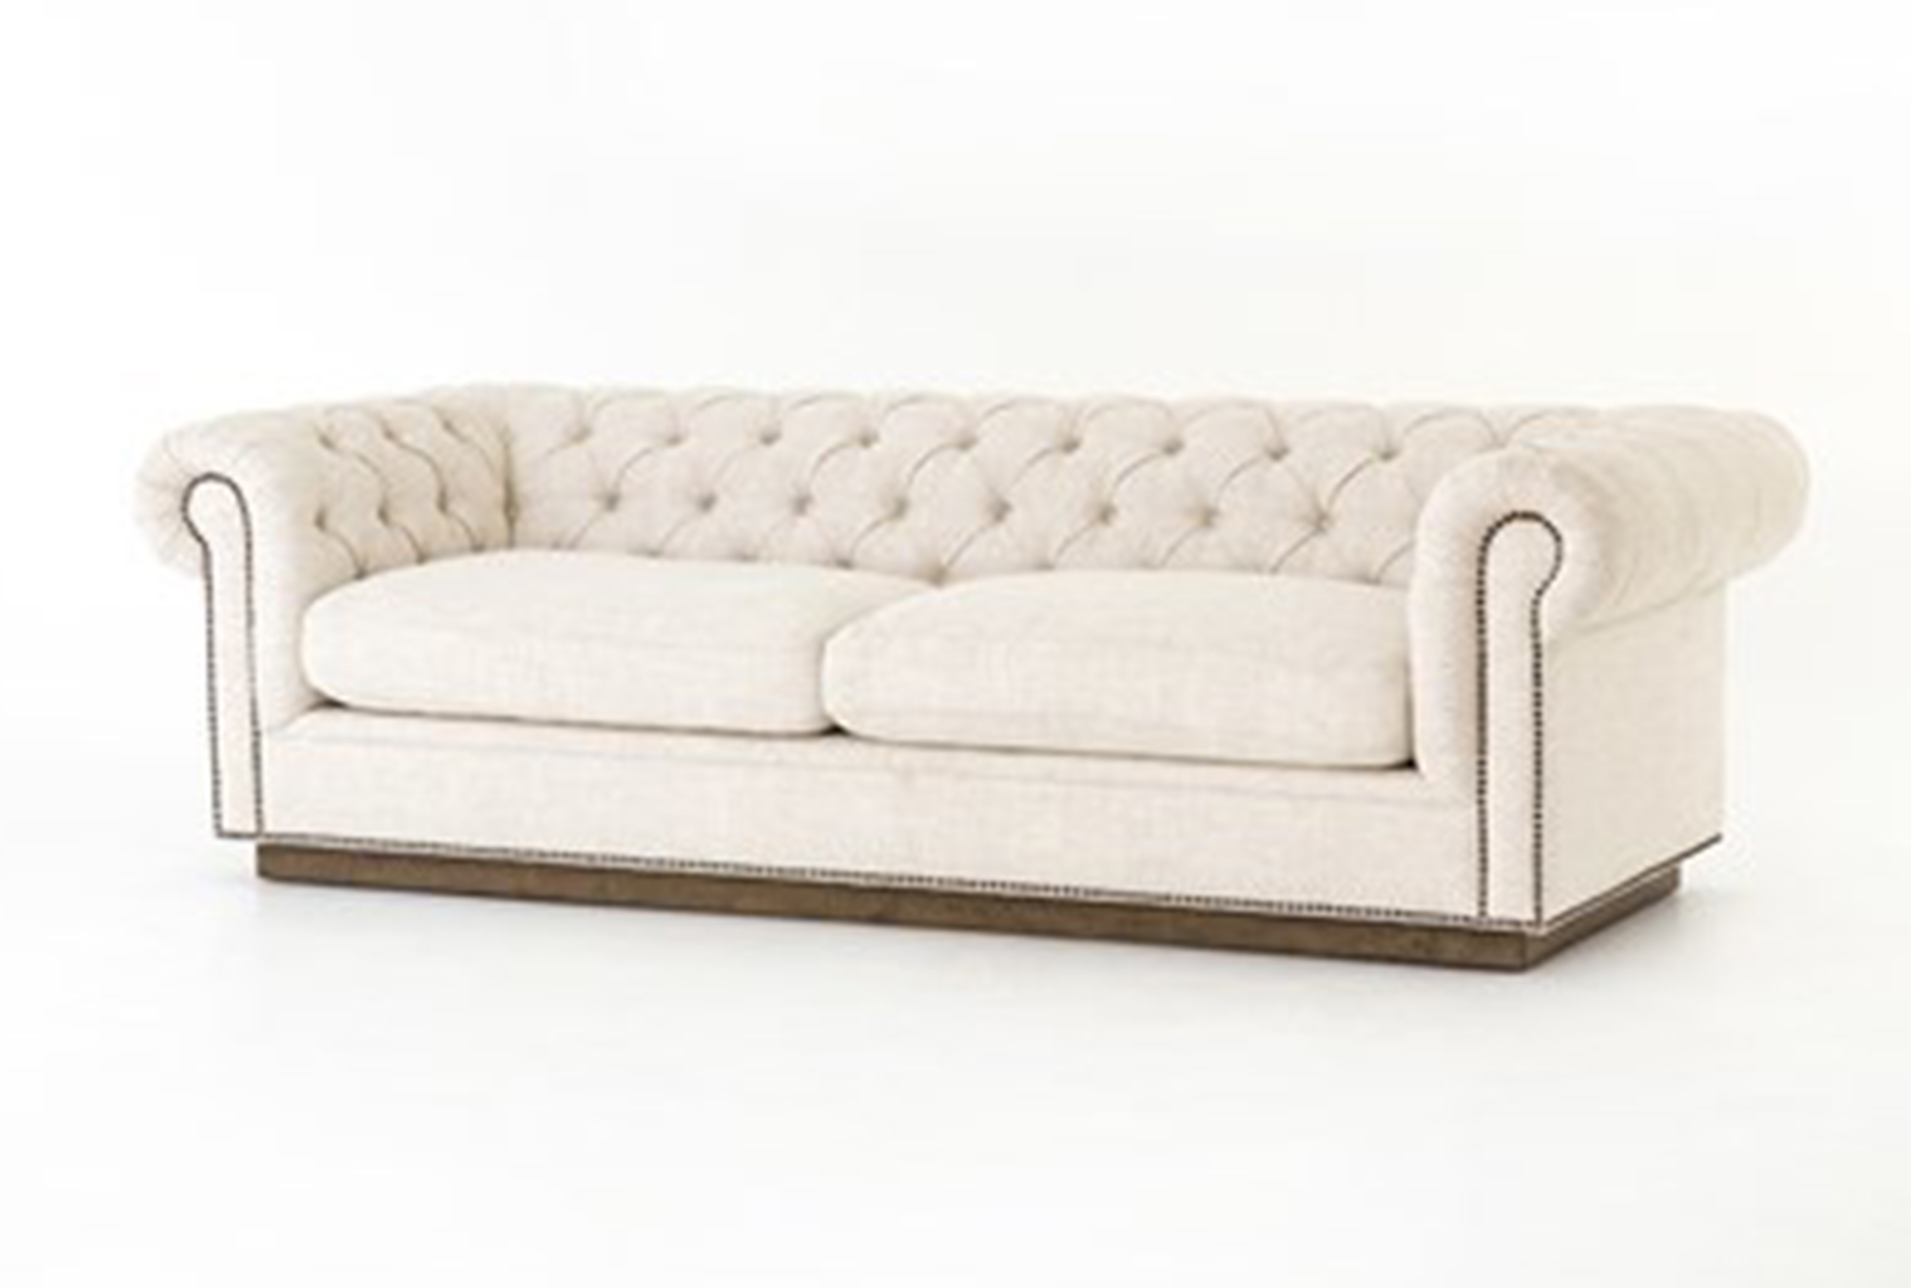 White Tufted Sofa With Studs   360 Elements